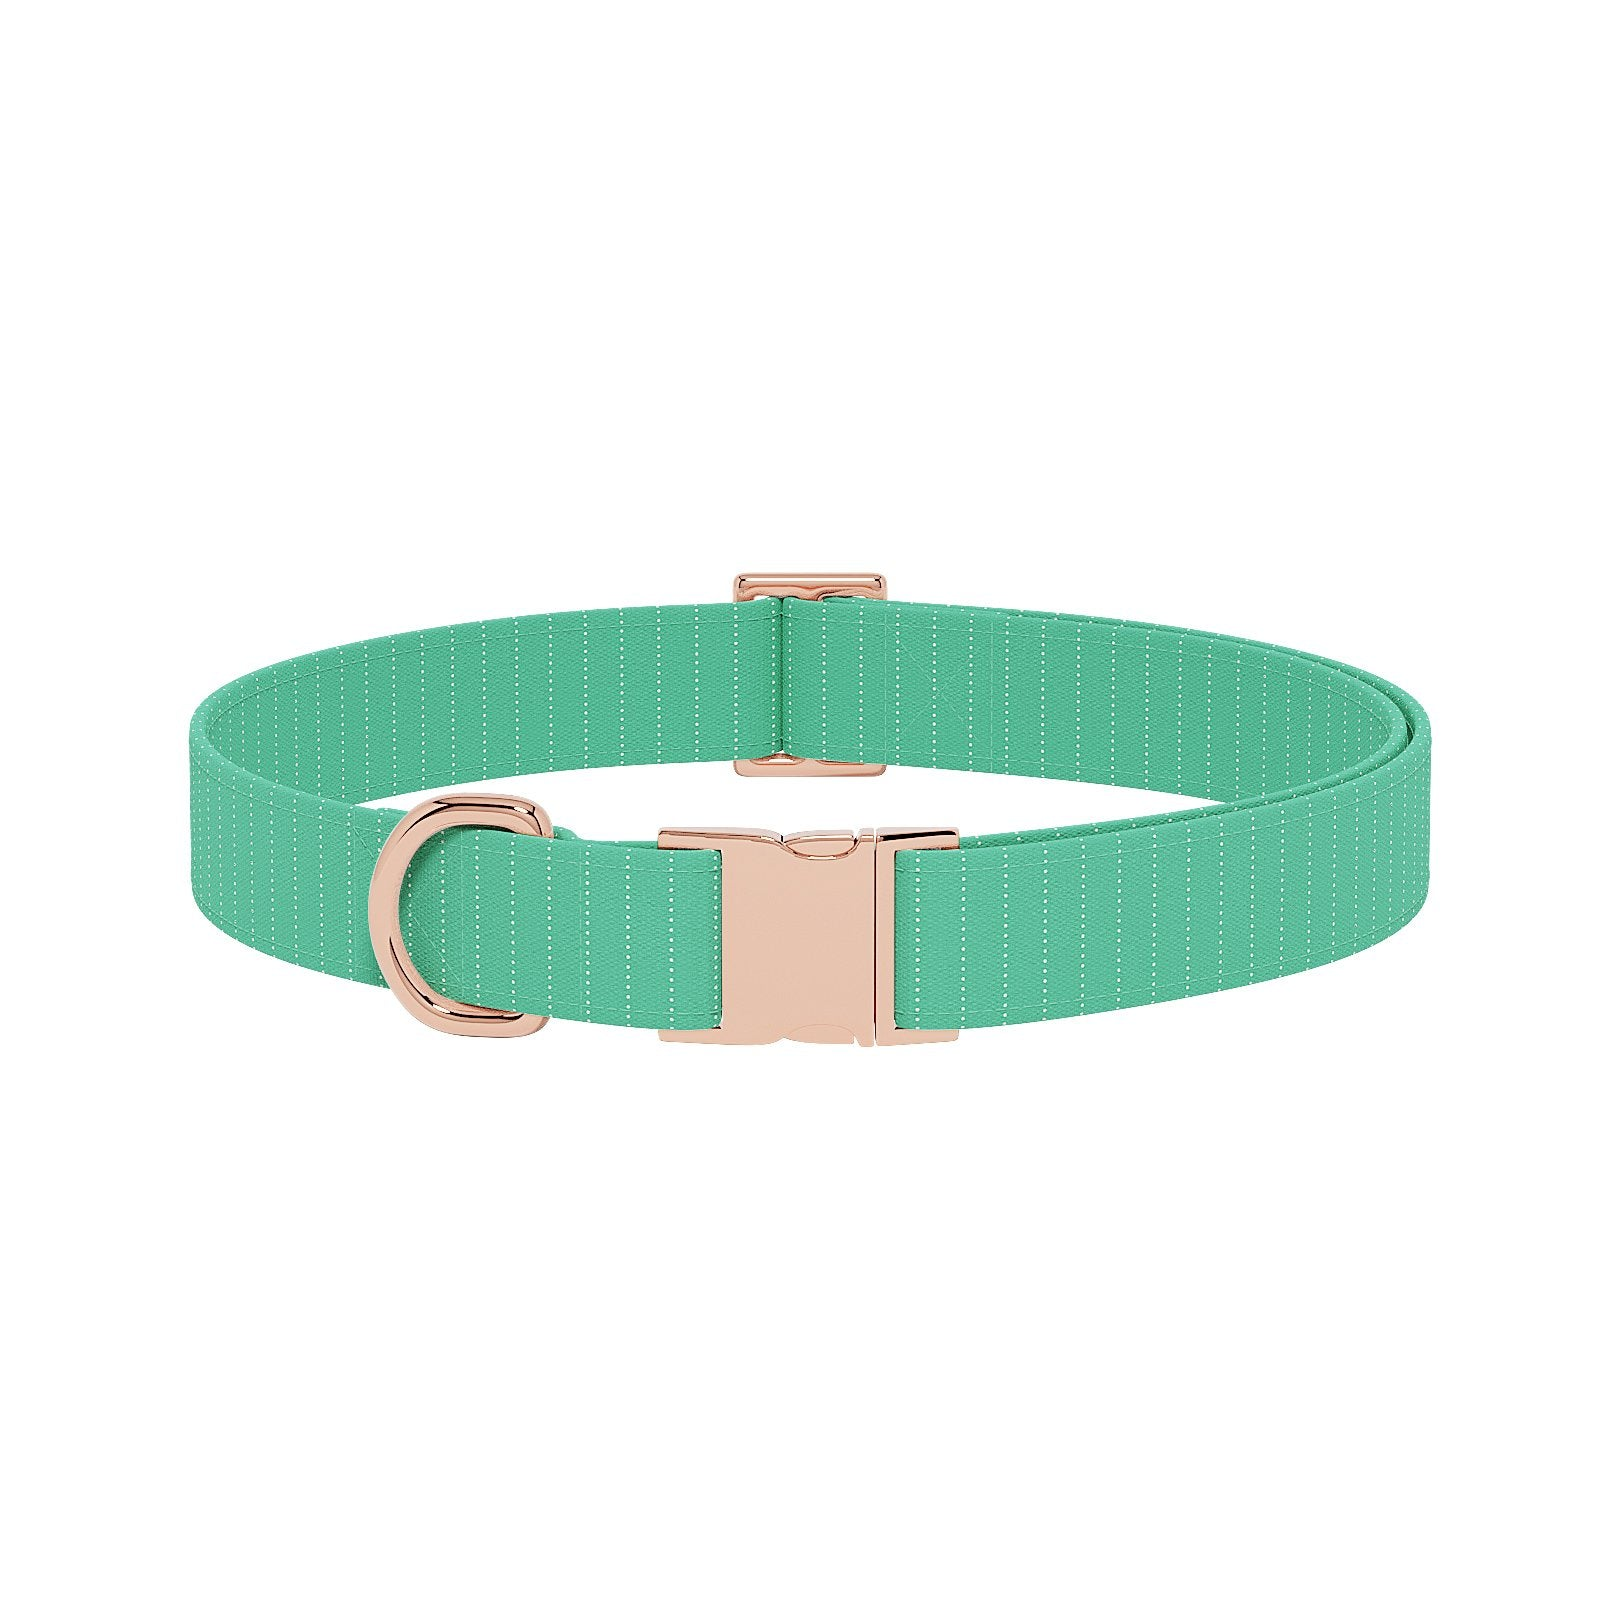 Pinstripe Green Dog Collar